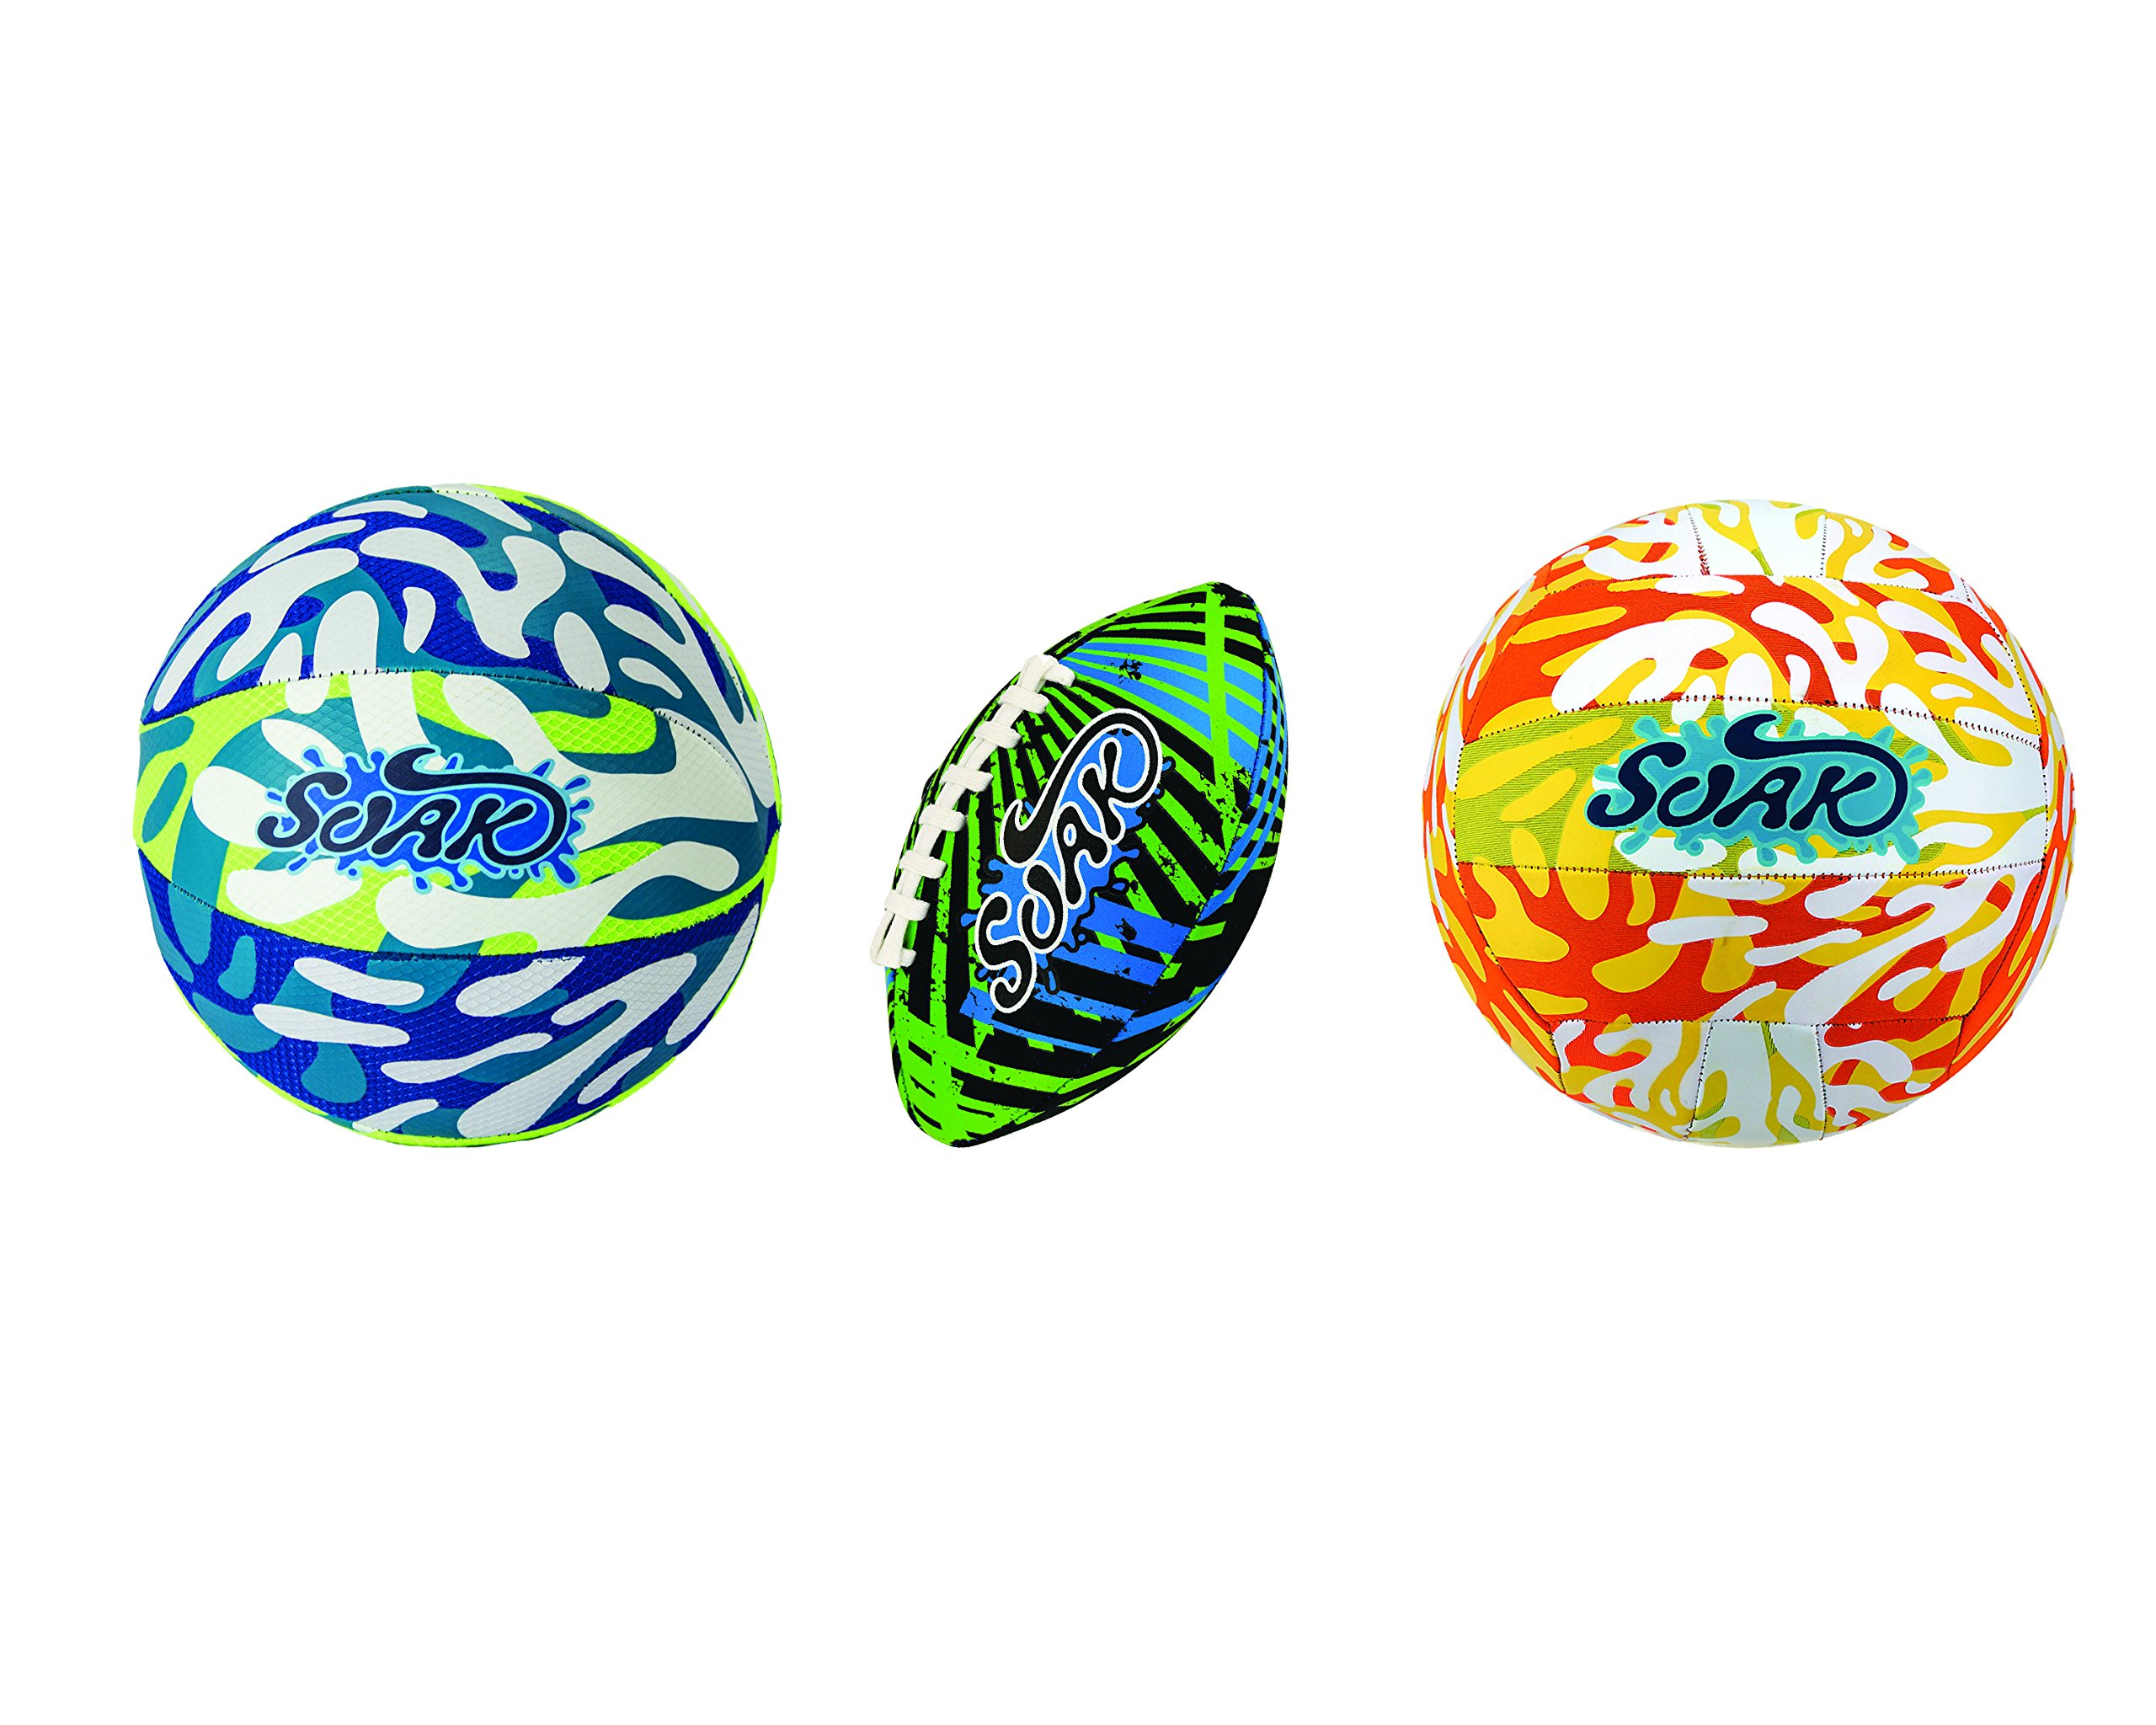 Soak Sport Trilogy Set - Outdoor Summer Sport Package includes an Inflatable Basketball, a Football and a Volleyball - Hand pump - by